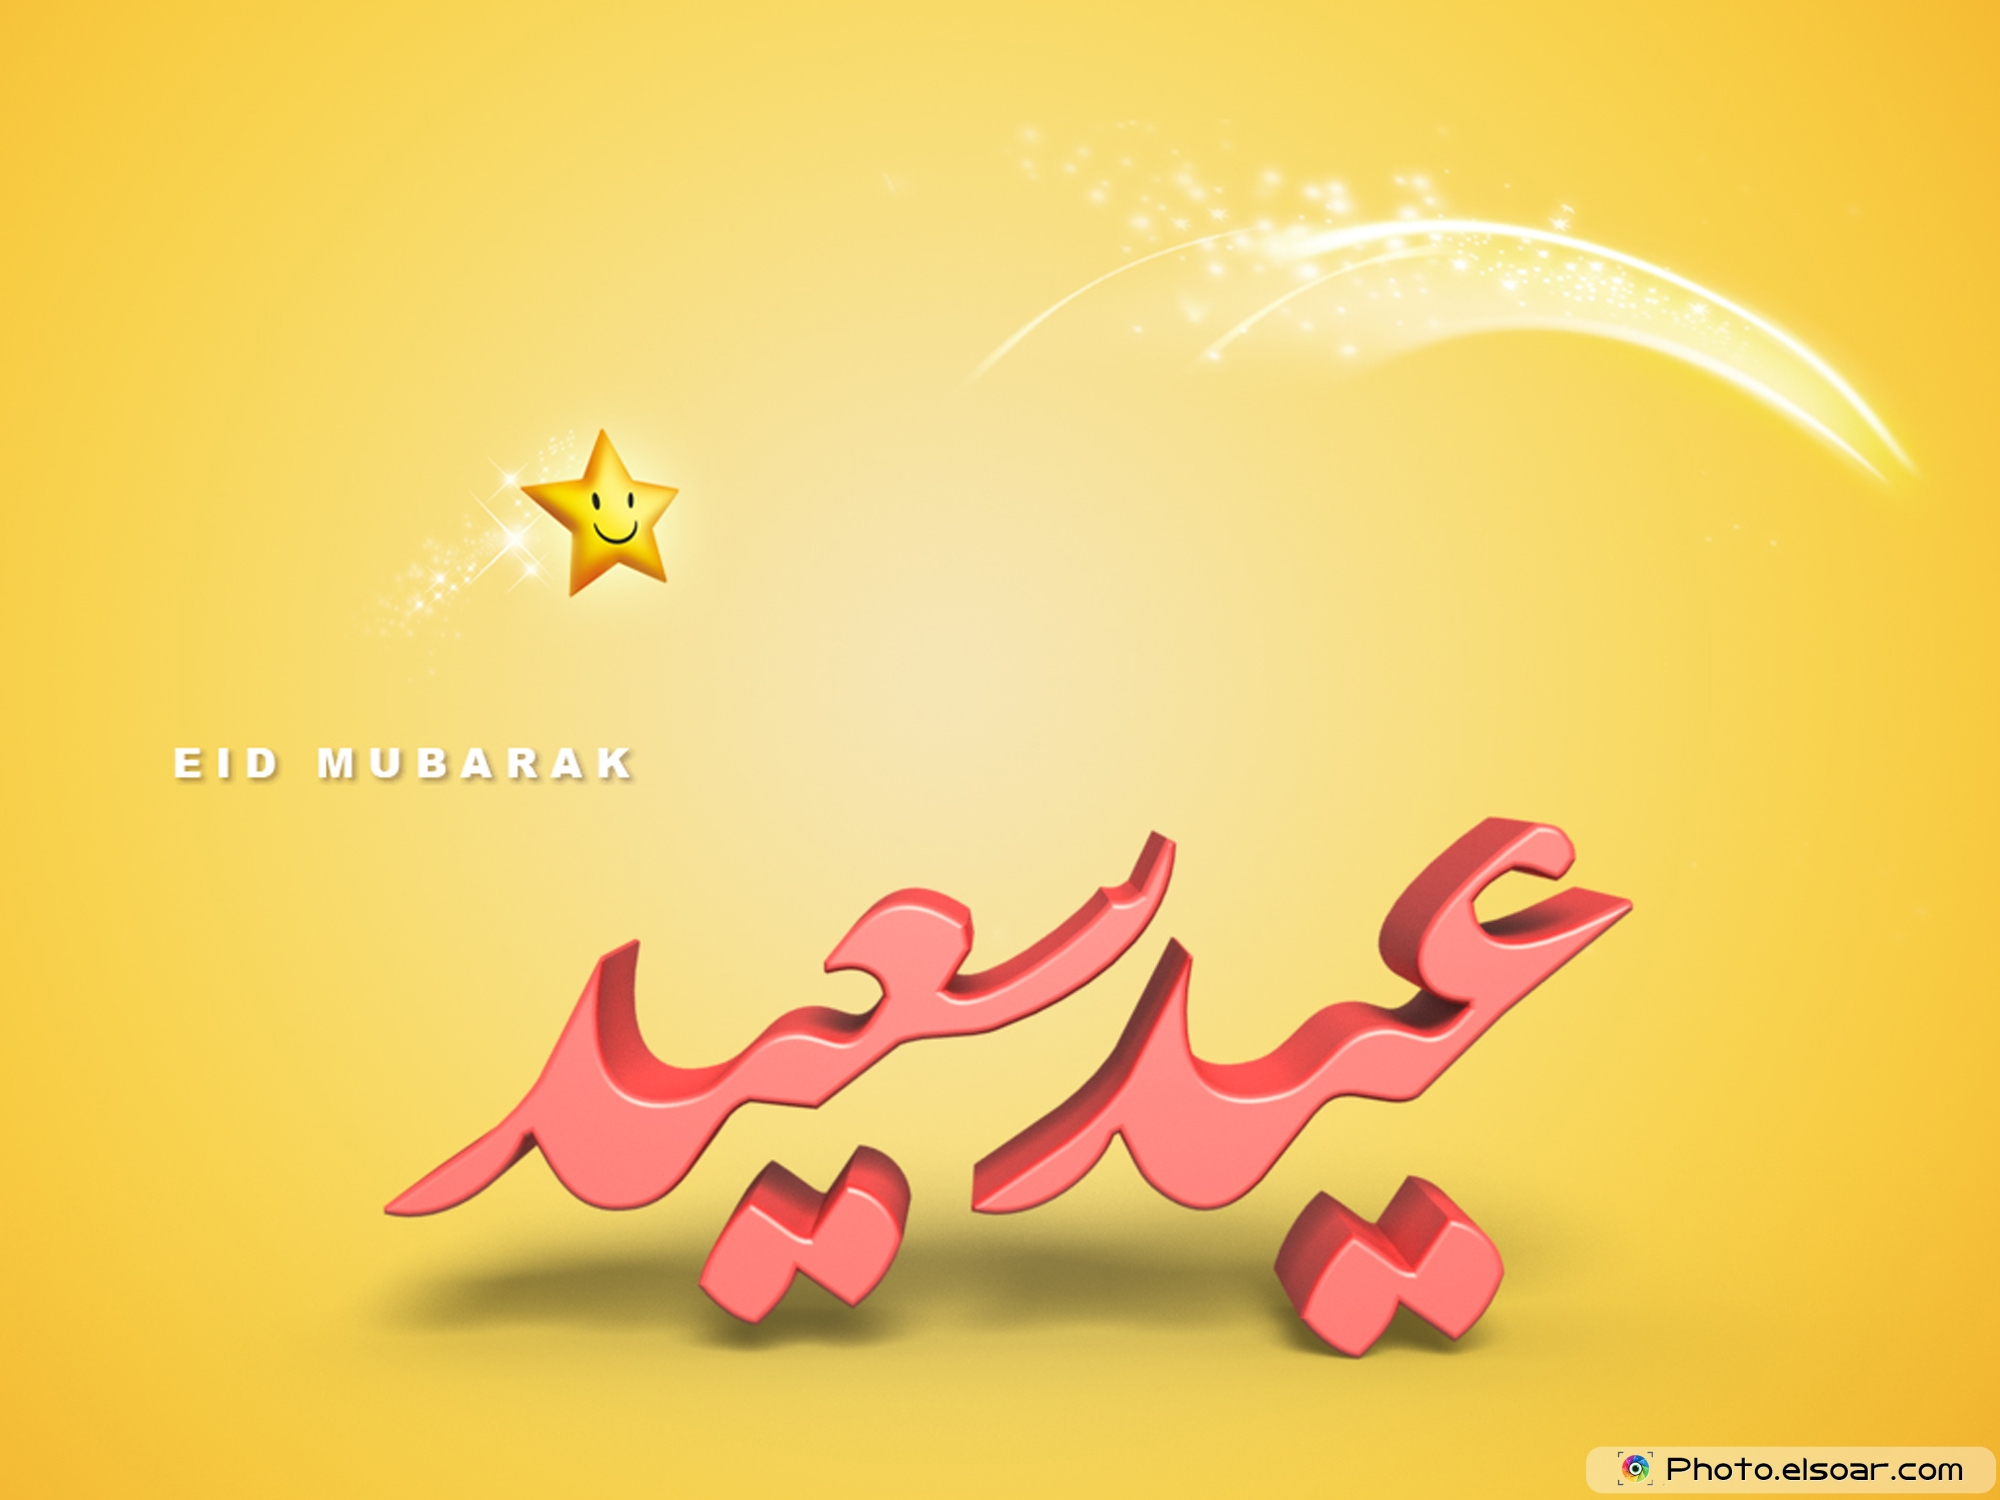 Eid Mubarak SMS English,Happy Eid SMS,Happy Eid Wishes,Happy Feast Messages,Eid SMS,Eid Greetings In English,Eid Greeting Message,Eid Ul Adha Wishes Images,Eid Ul Fitr SMS